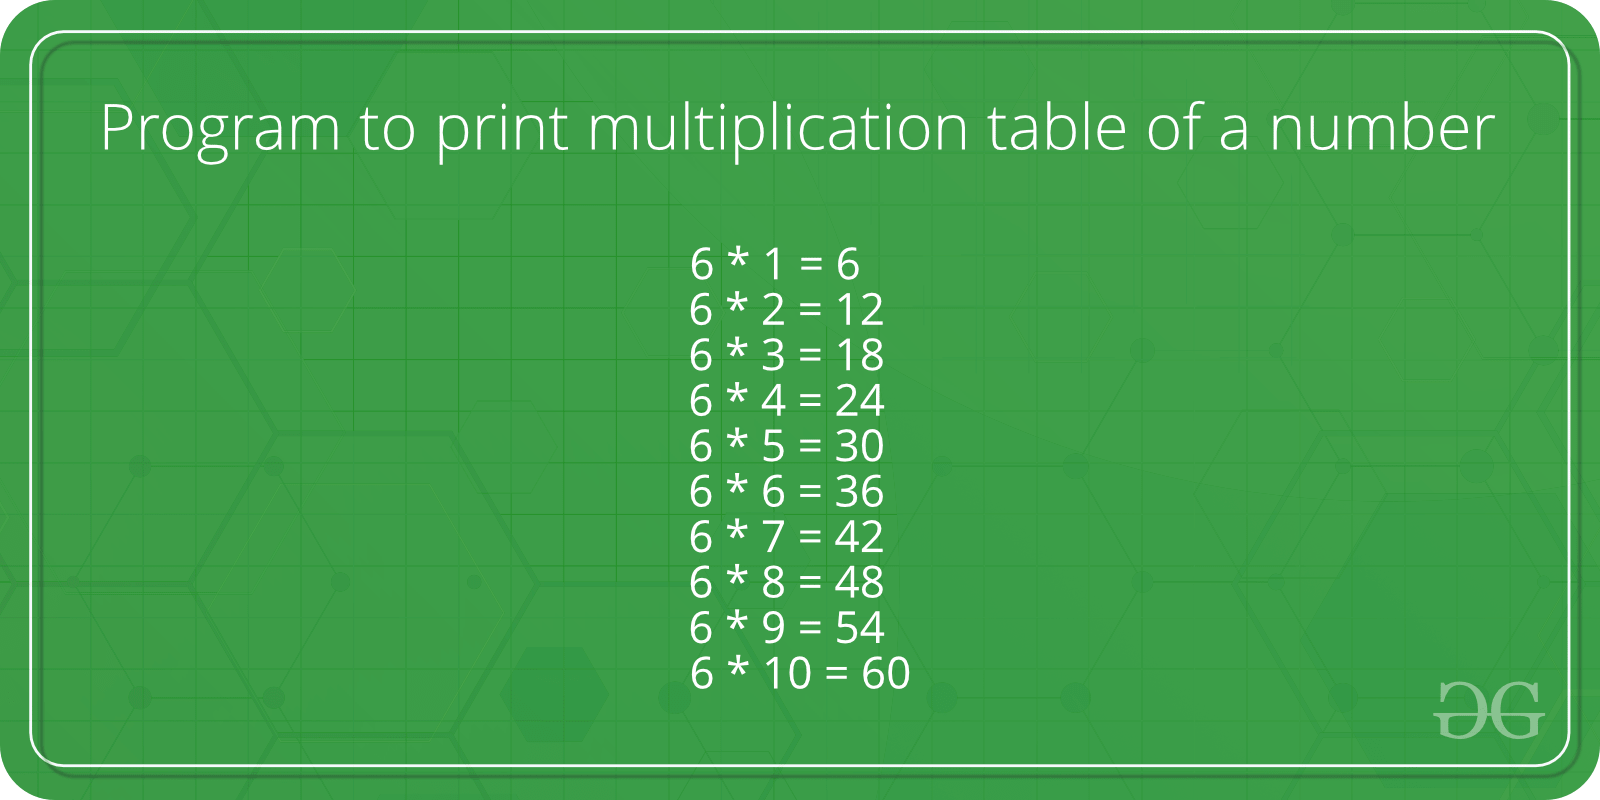 Program to print multiplication table of a number - GeeksforGeeks